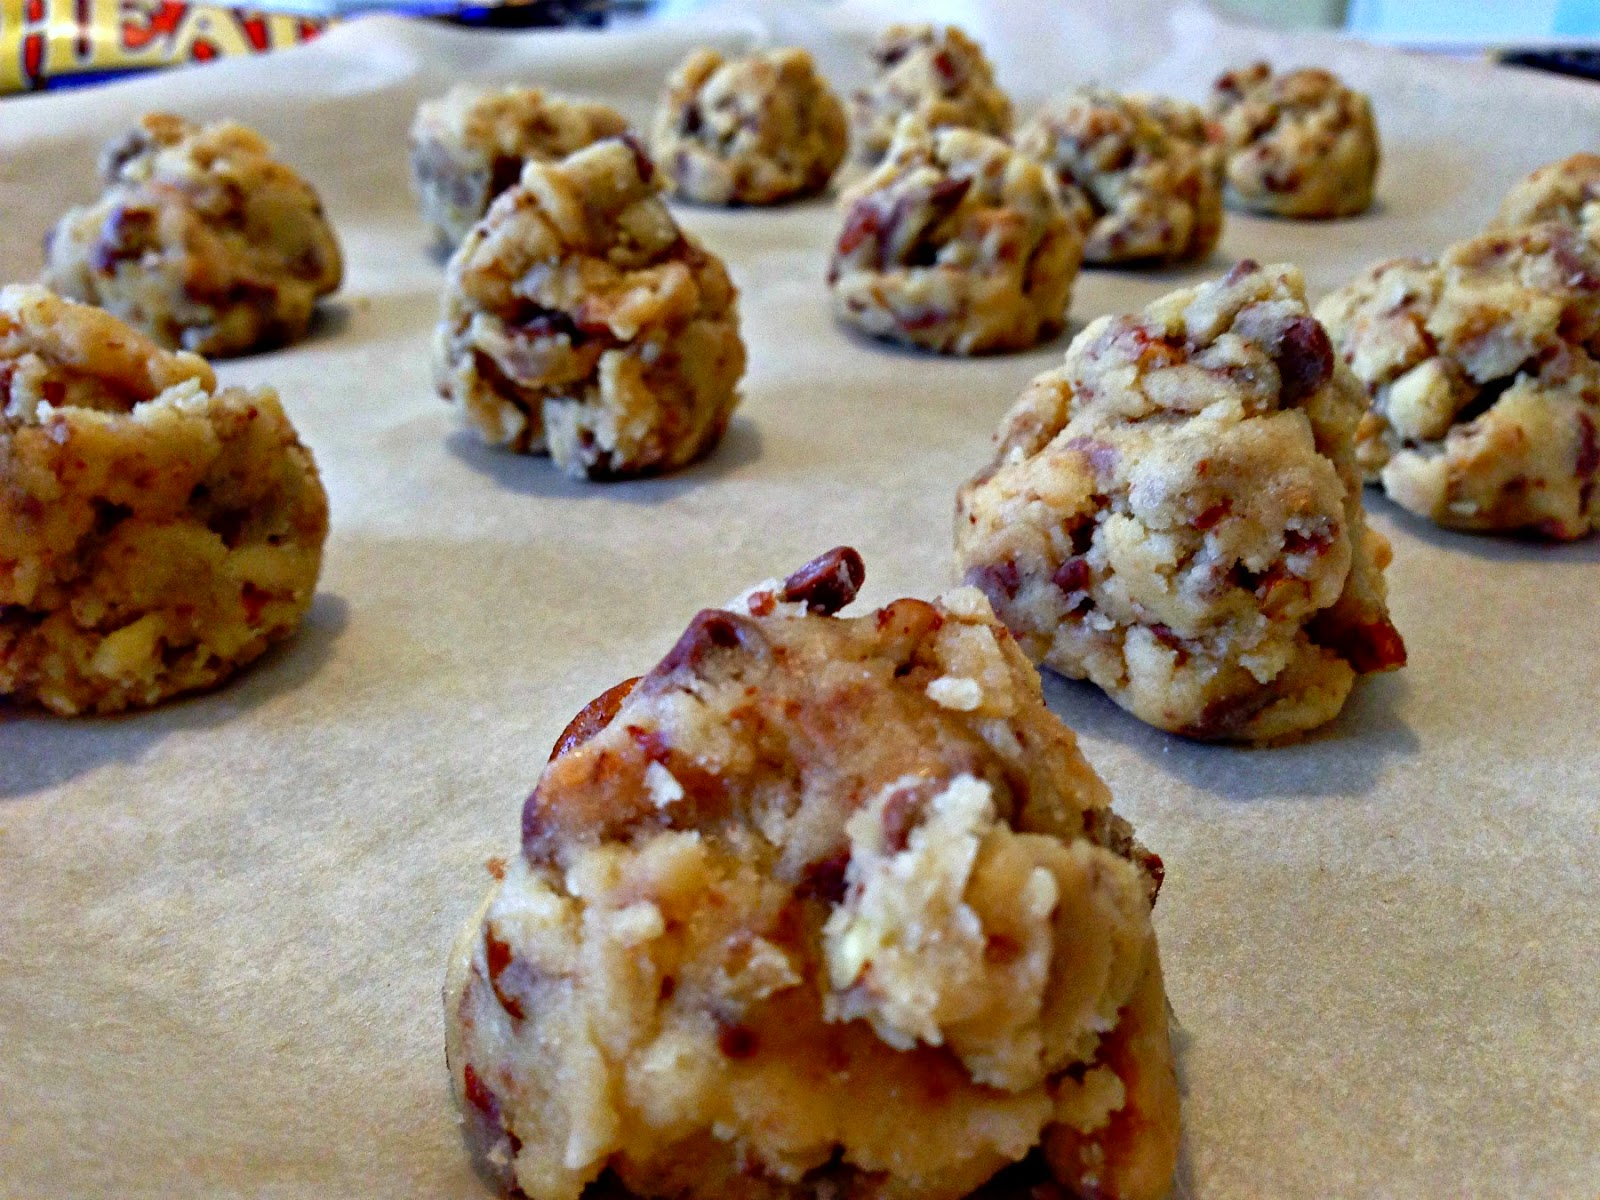 OMG Heath Bar Cookies - From Everyday To Gourmet